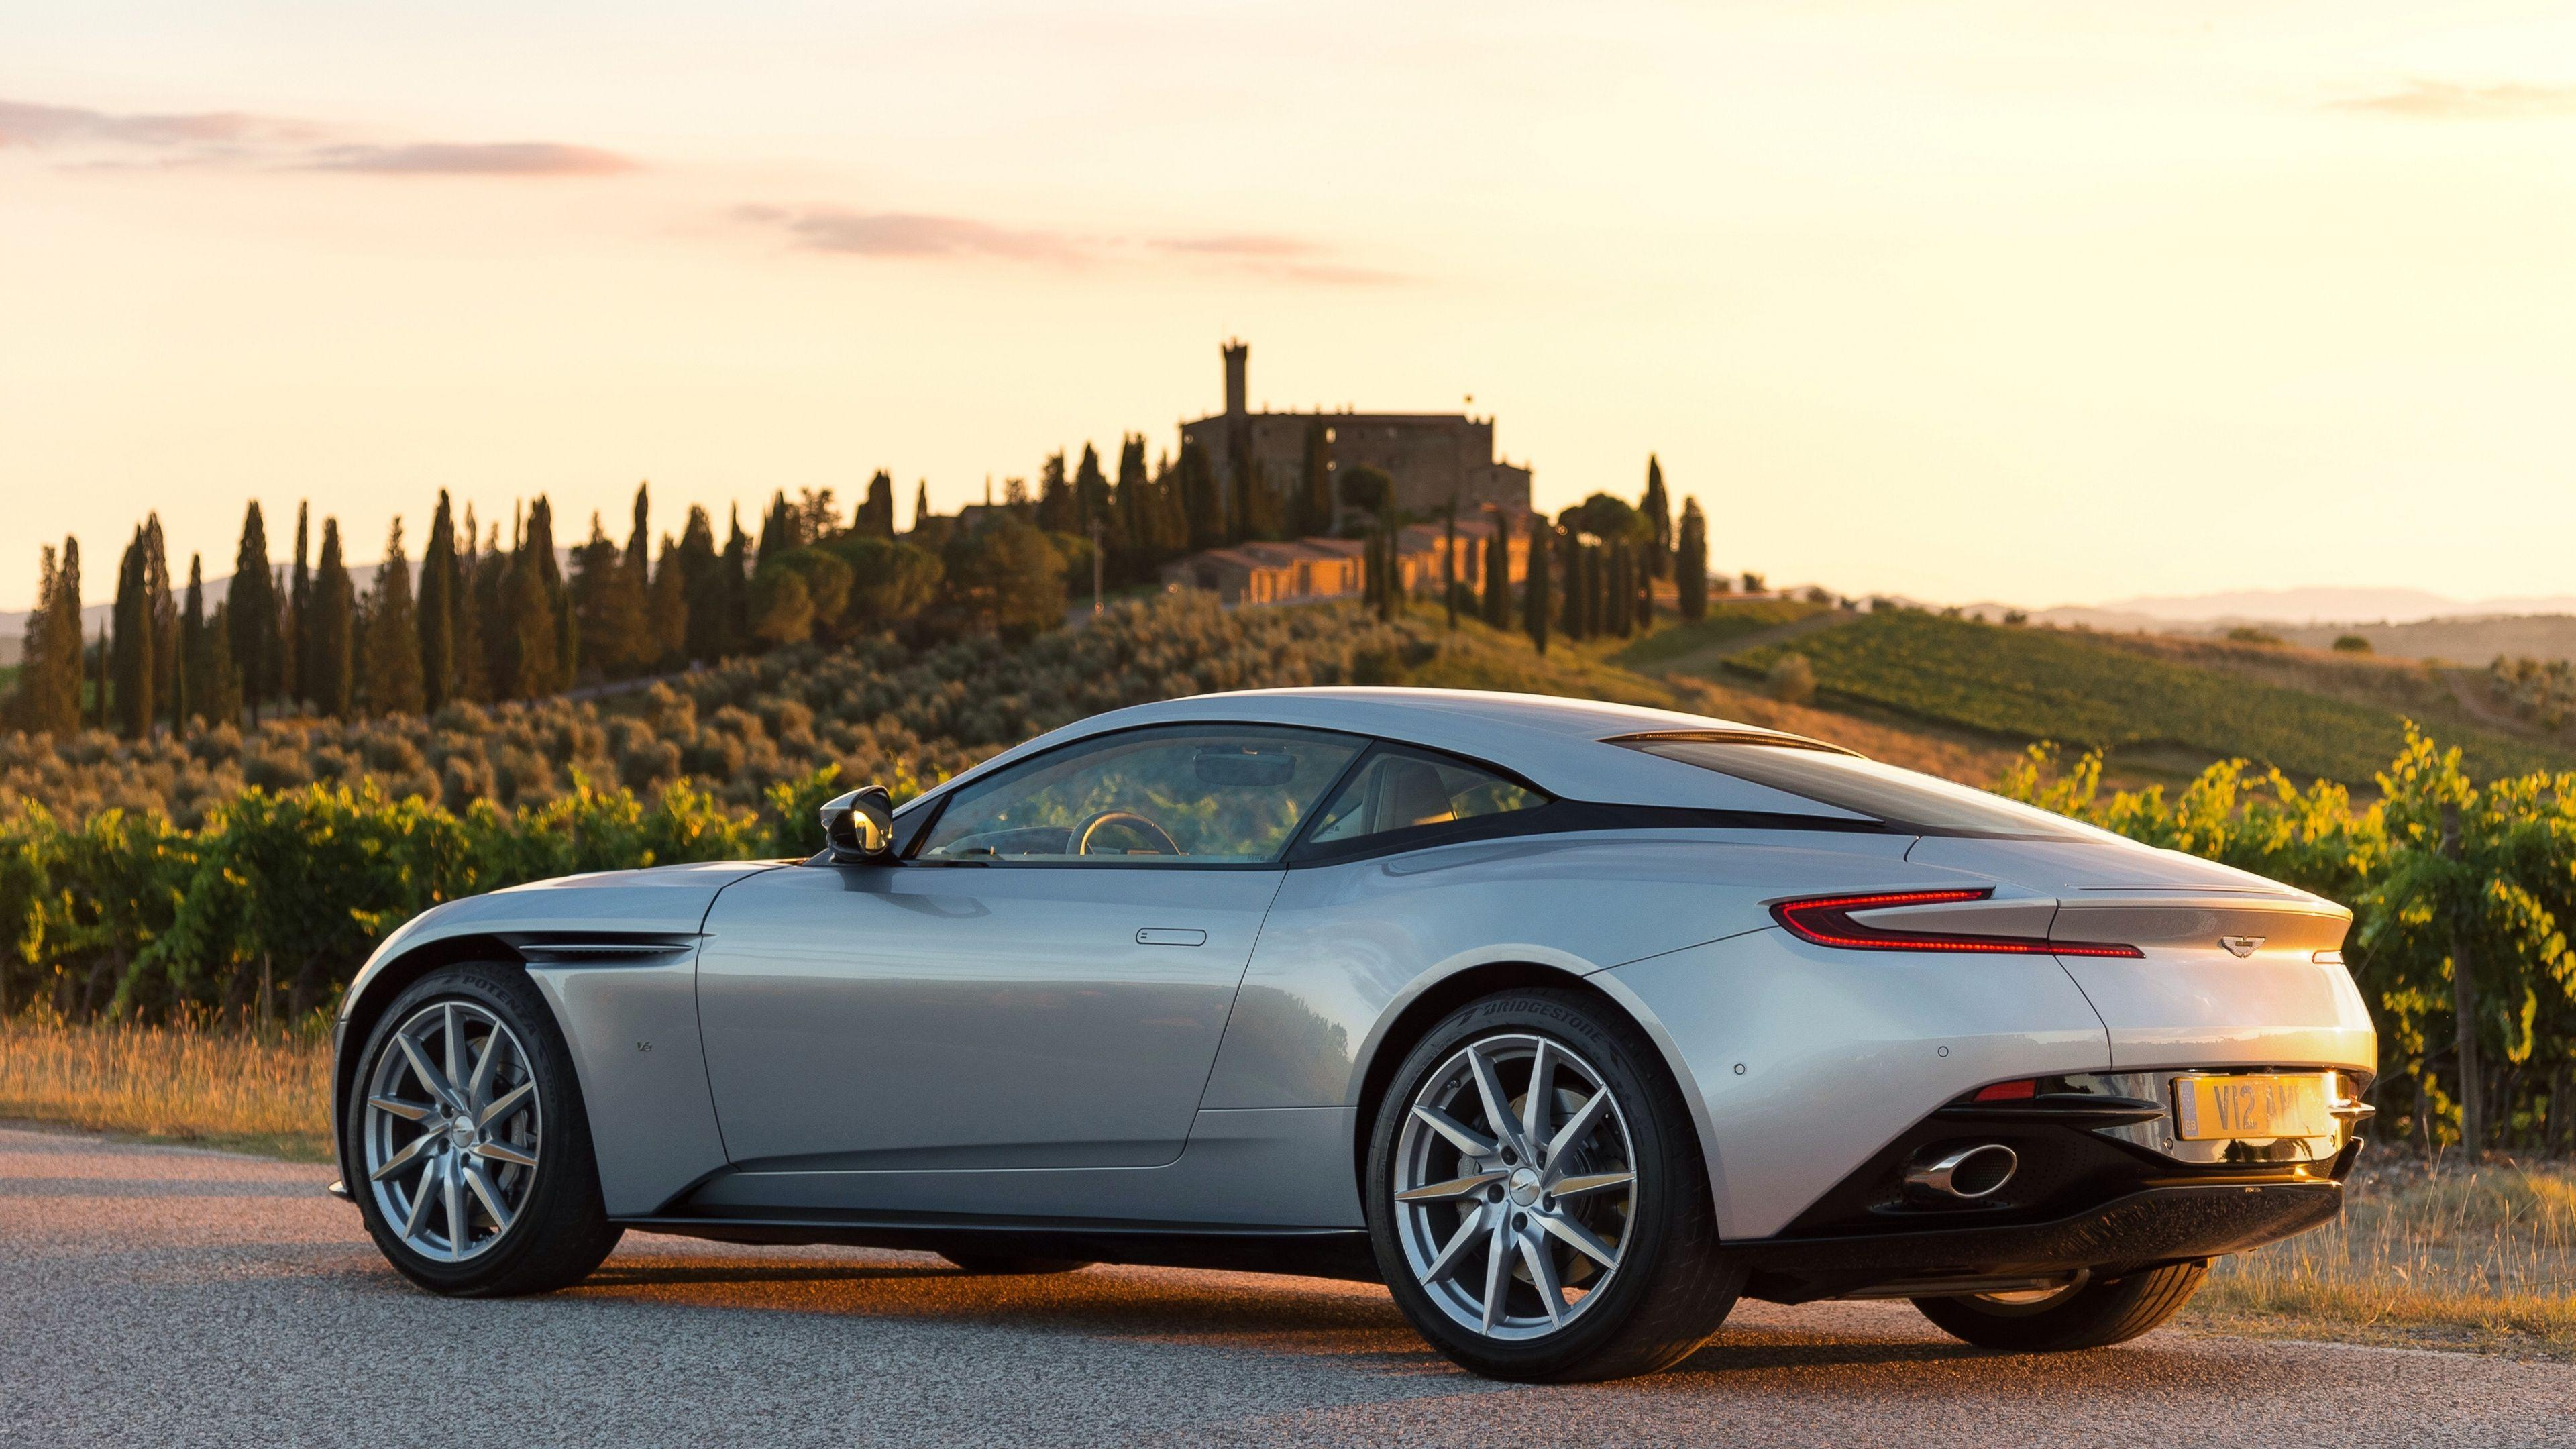 Download Wallpapers 3840x2160 Aston martin, Db11, Side view 4K